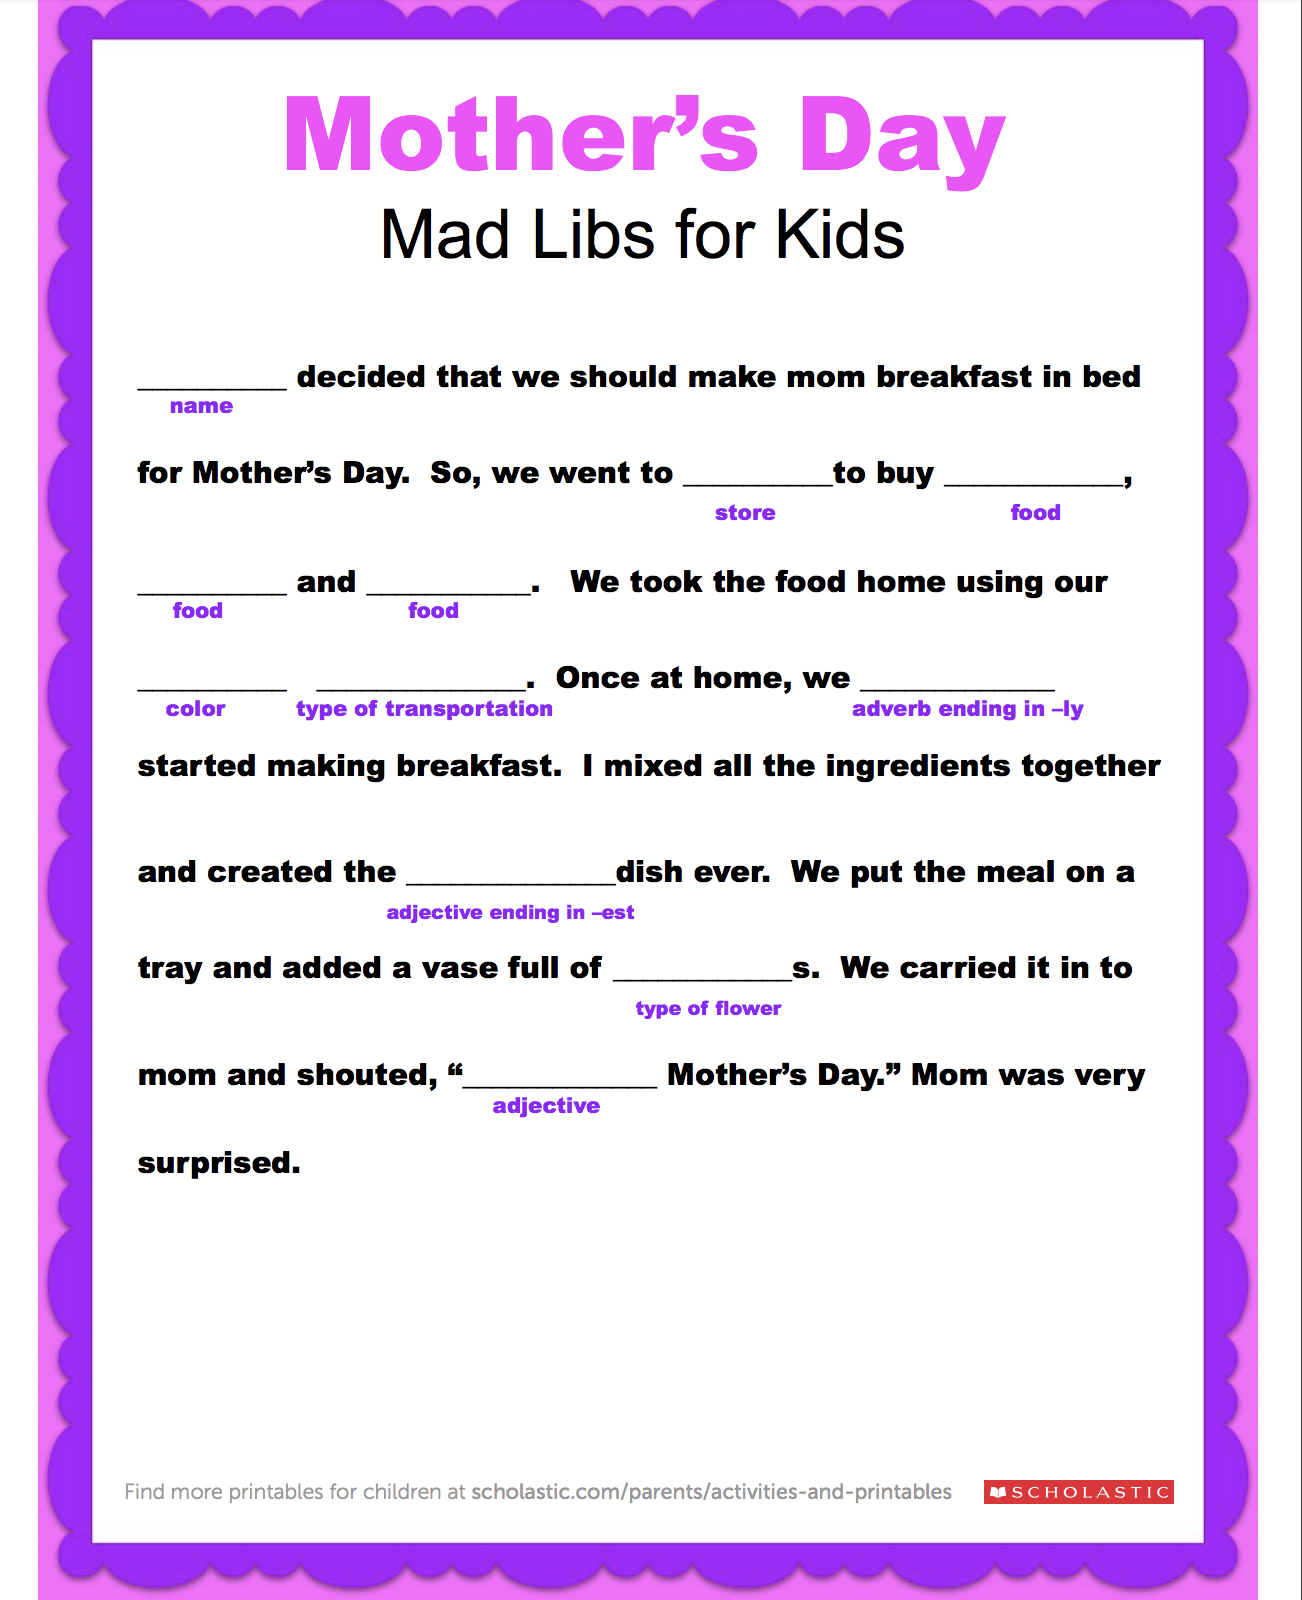 Enjoy A Mother S Day Mad Libs With Your Child